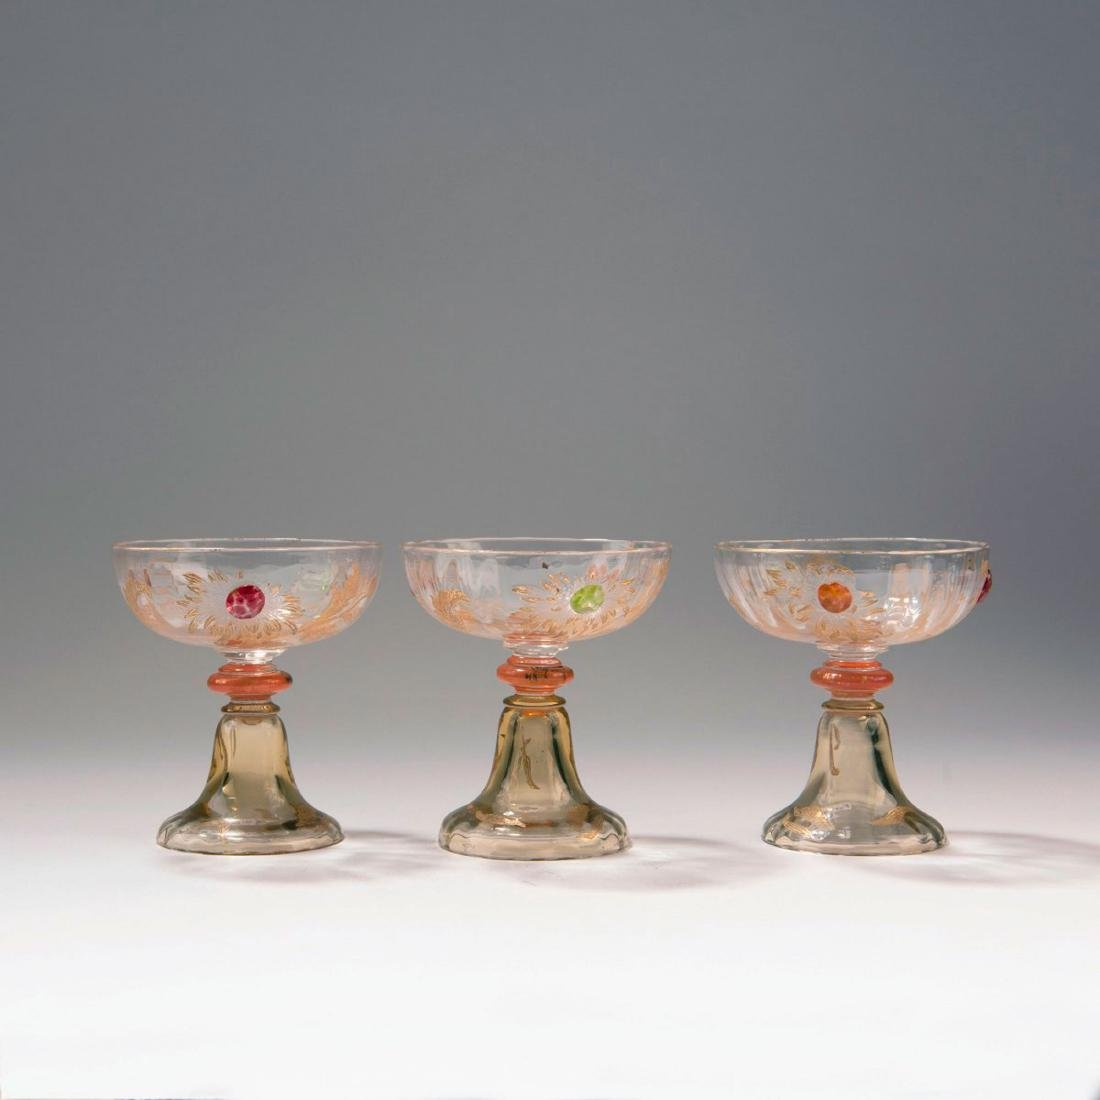 Three champagne glasses from the 'Chrysanthèmes' set,